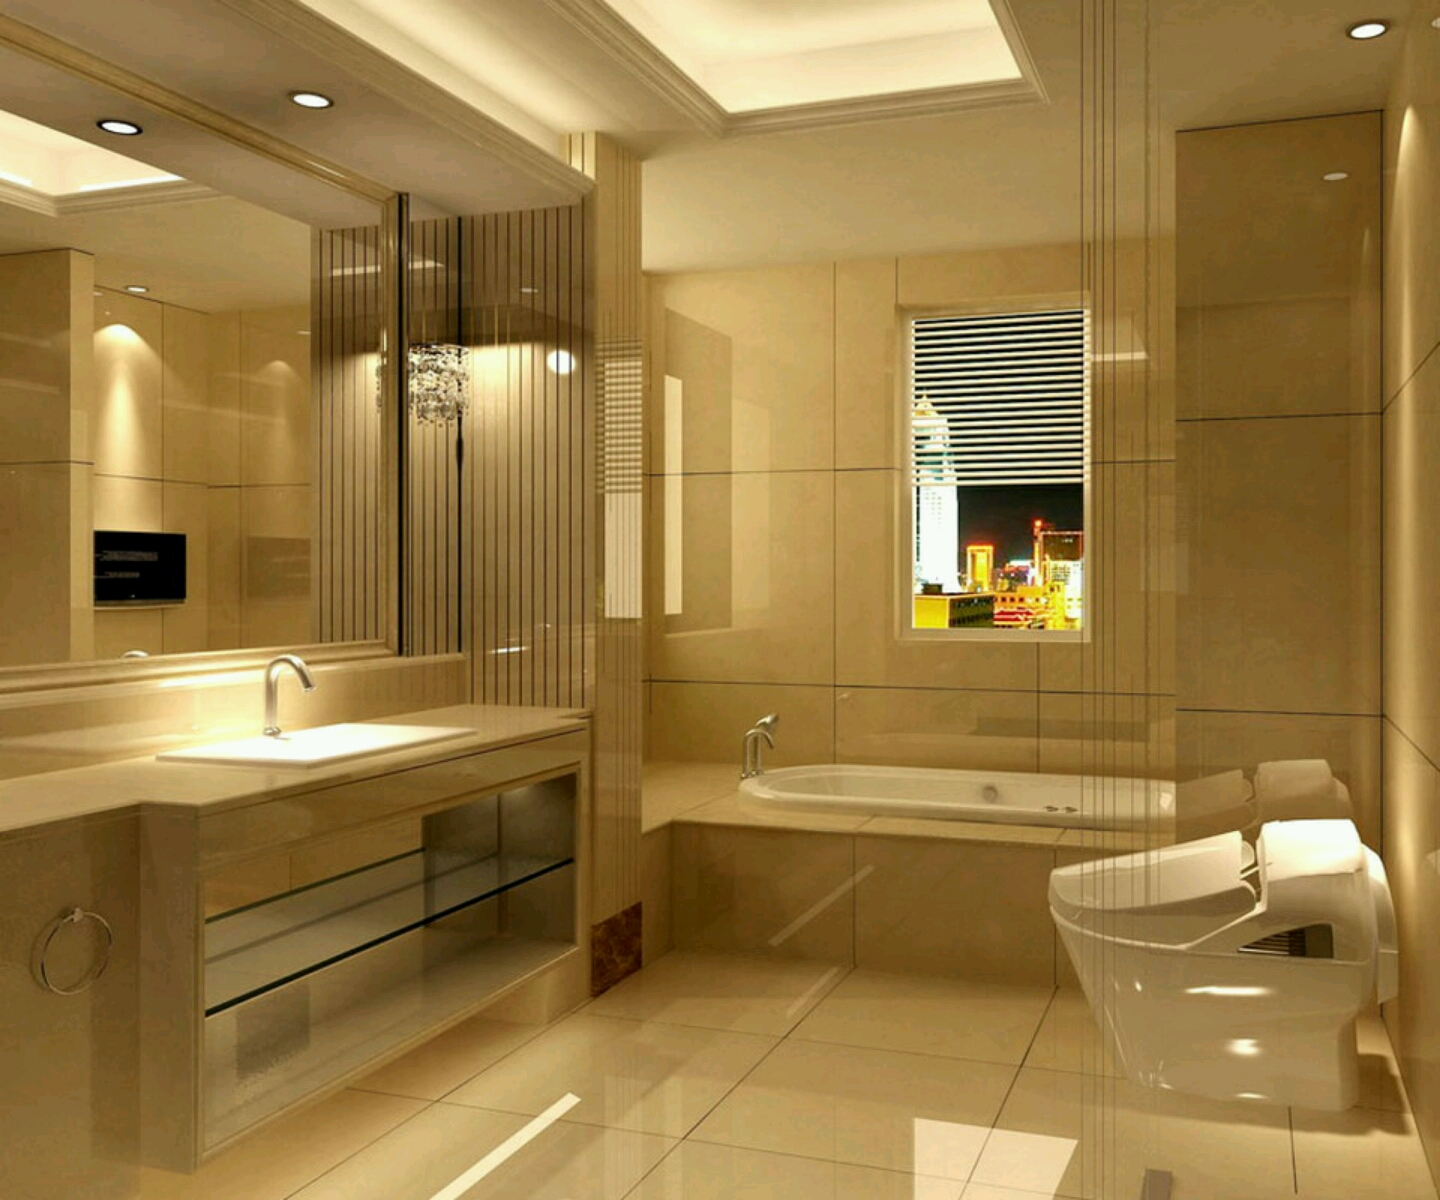 Modern bathrooms setting ideas furniture gallery for Bathroom design gallery